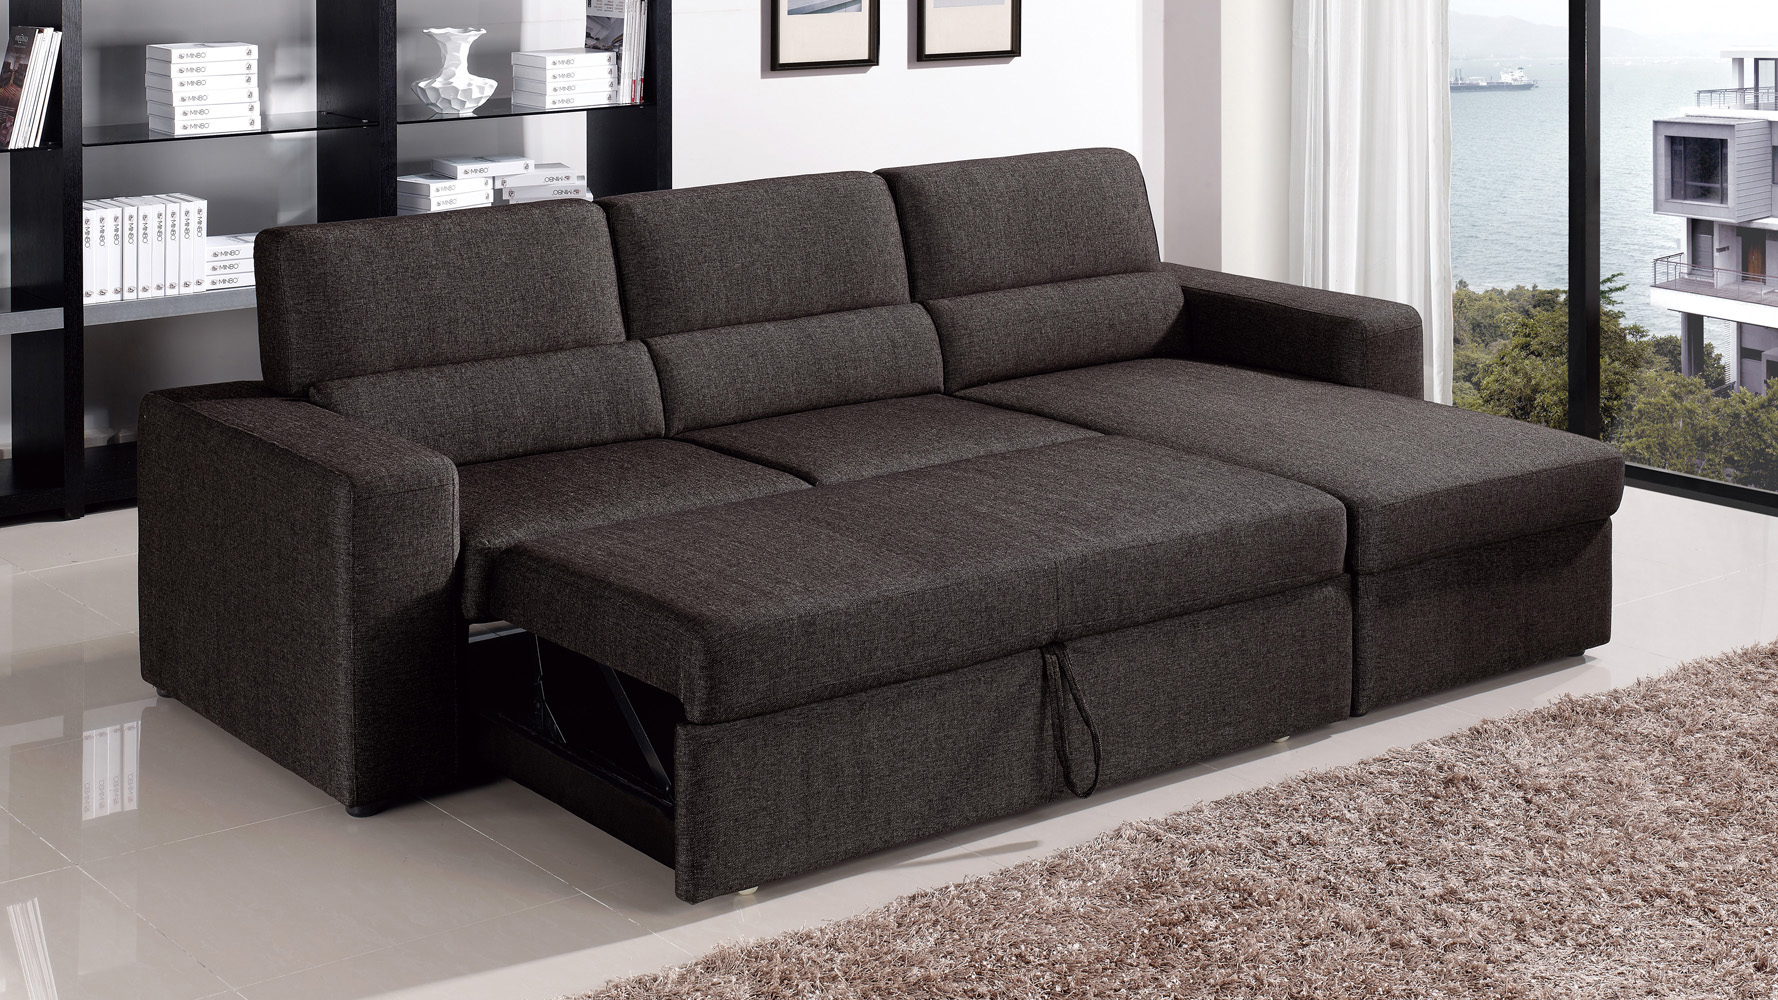 brown sectional sleeper sofa henley collection black clubber zuri furniture